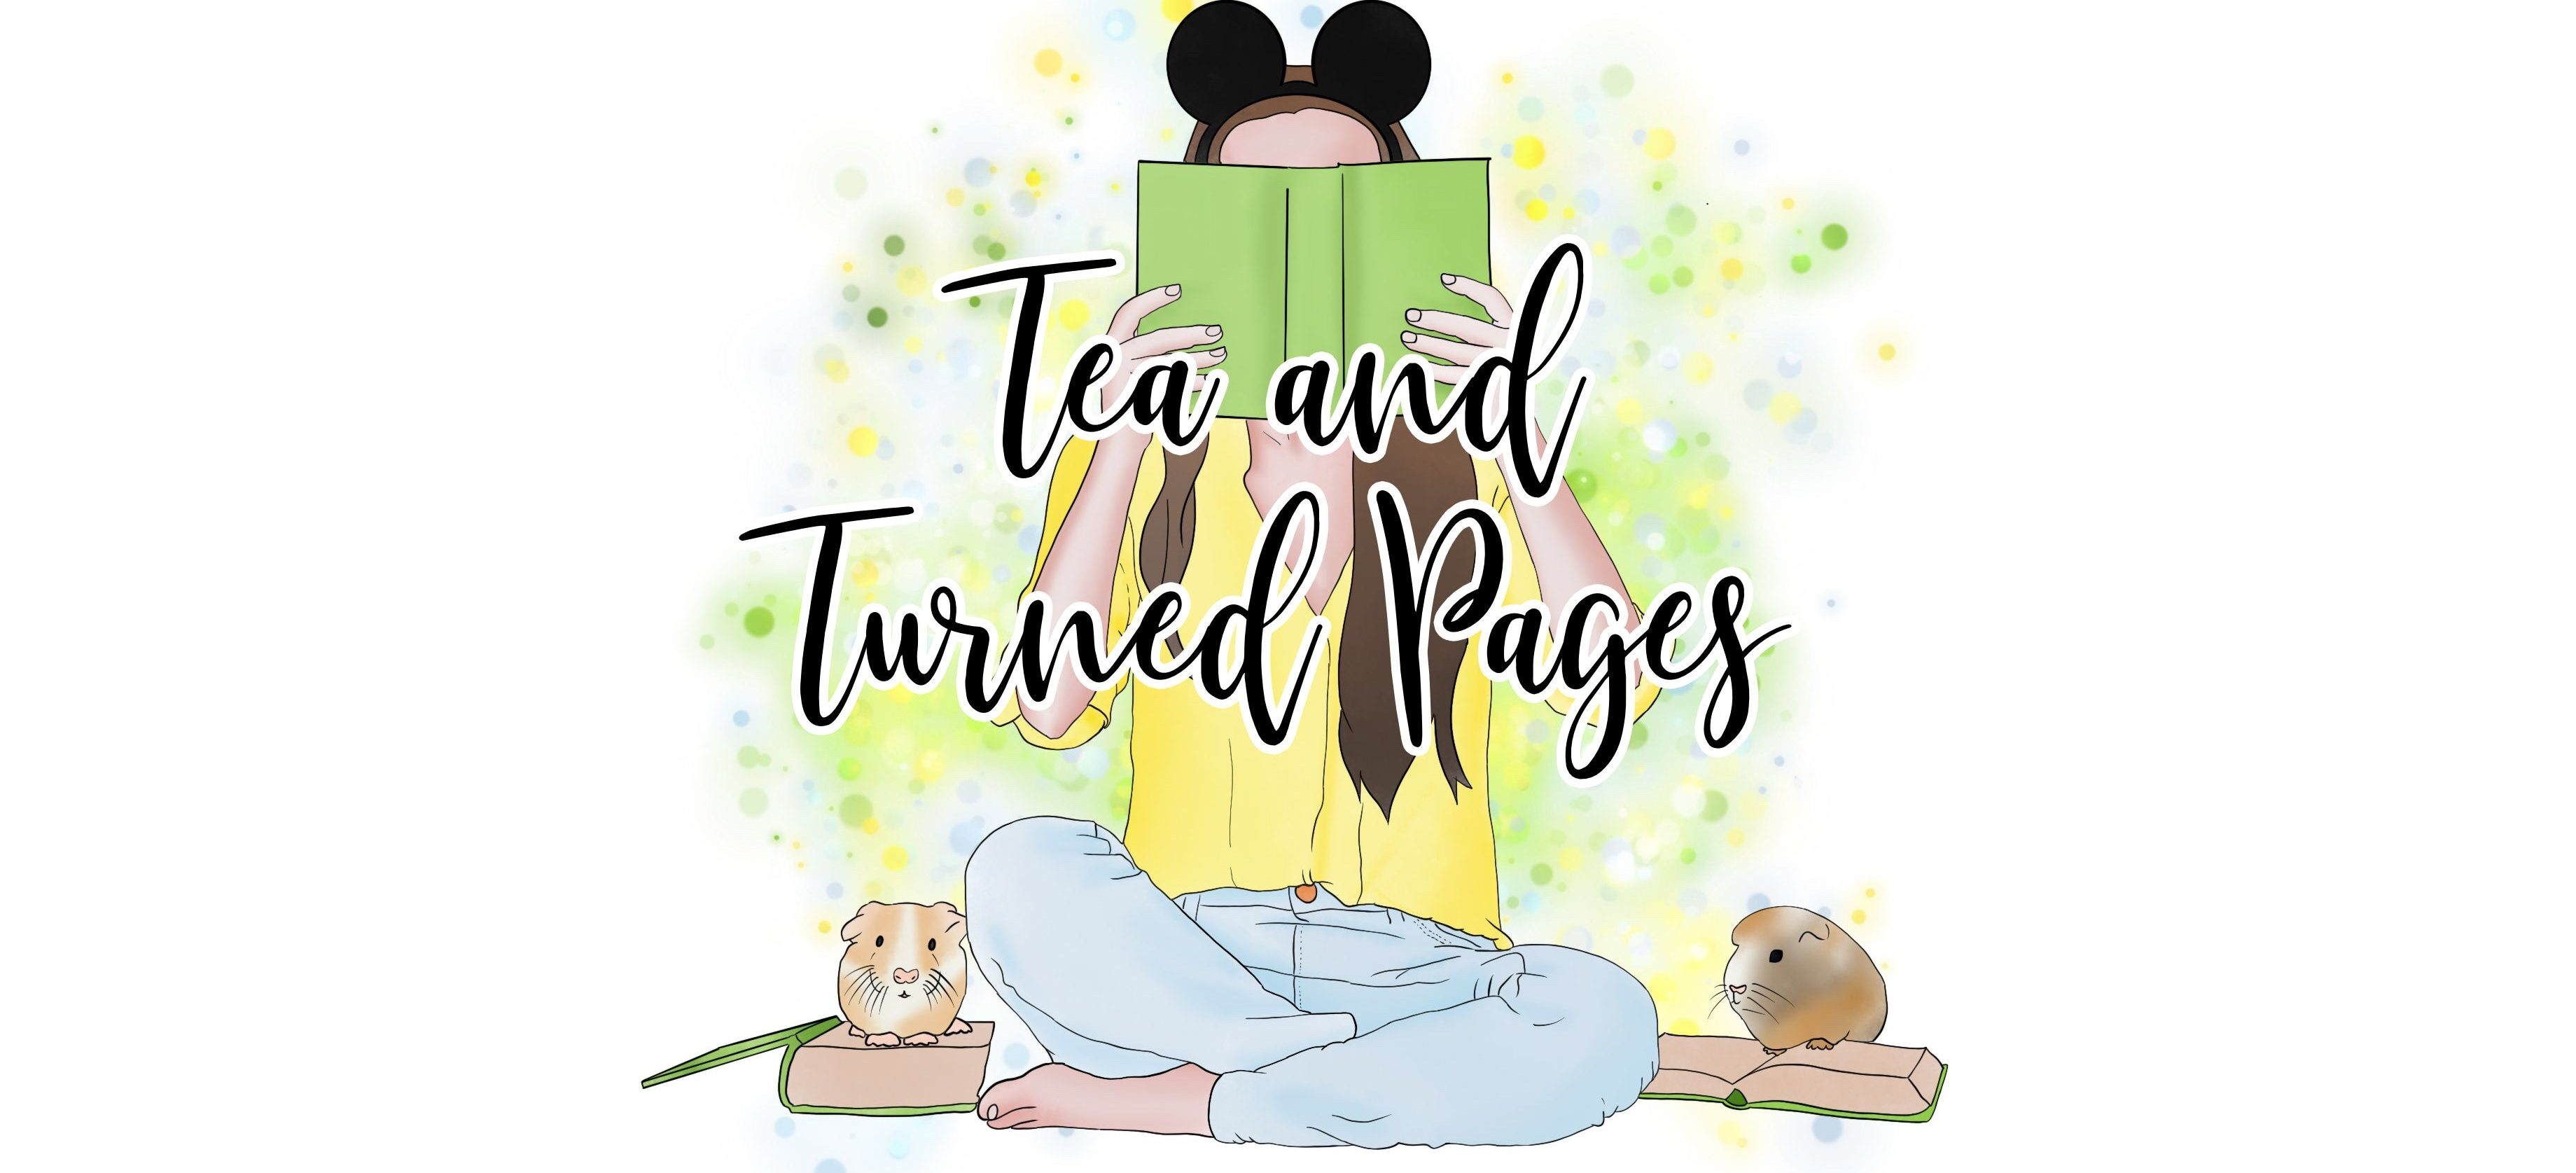 Tea and Turned Pages